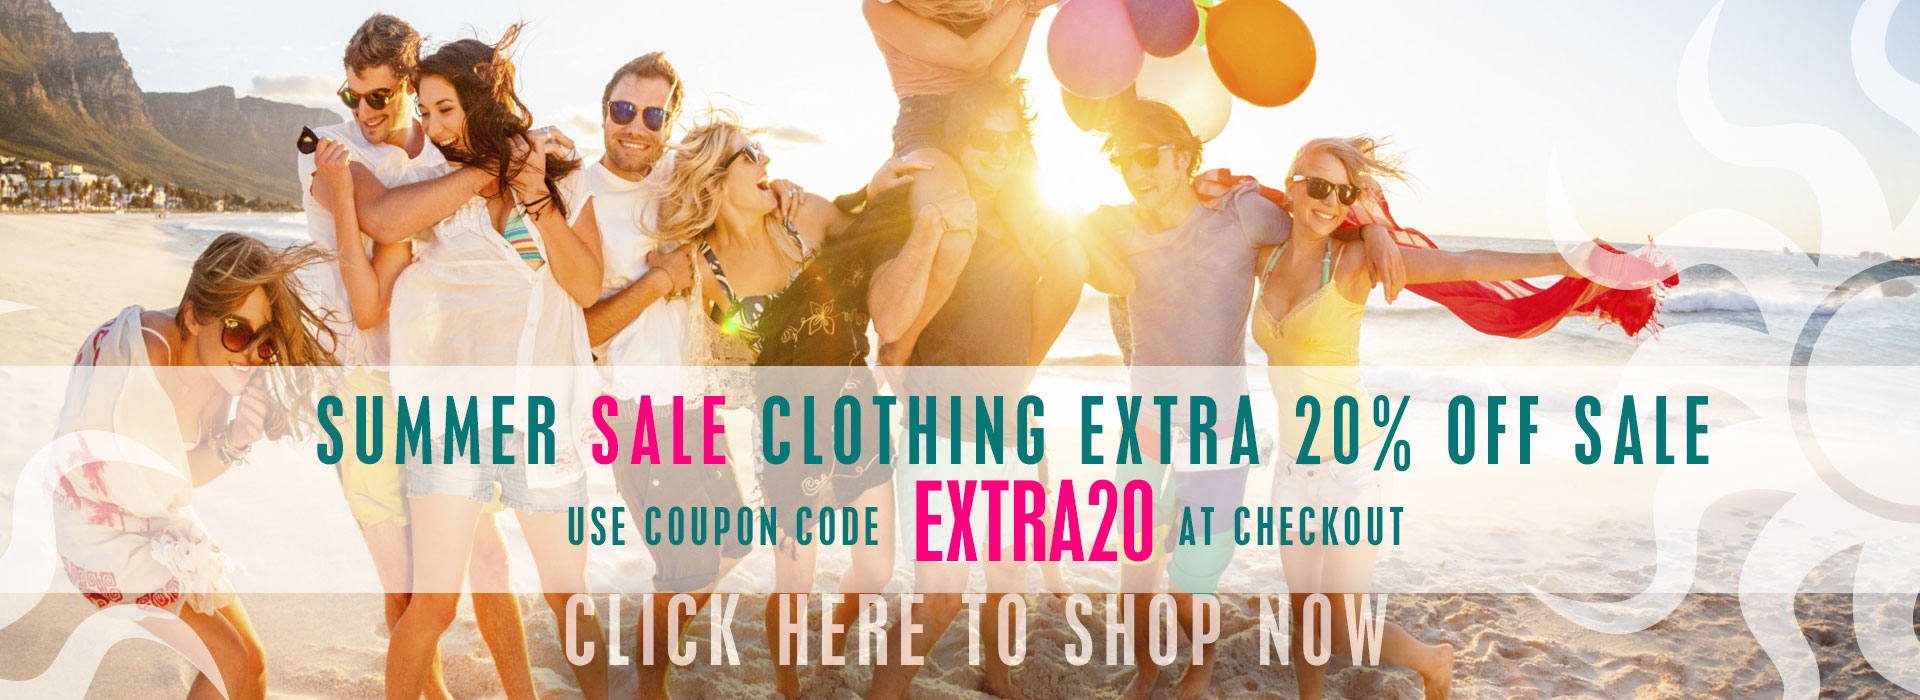 Summer Sale Clothing Sale!